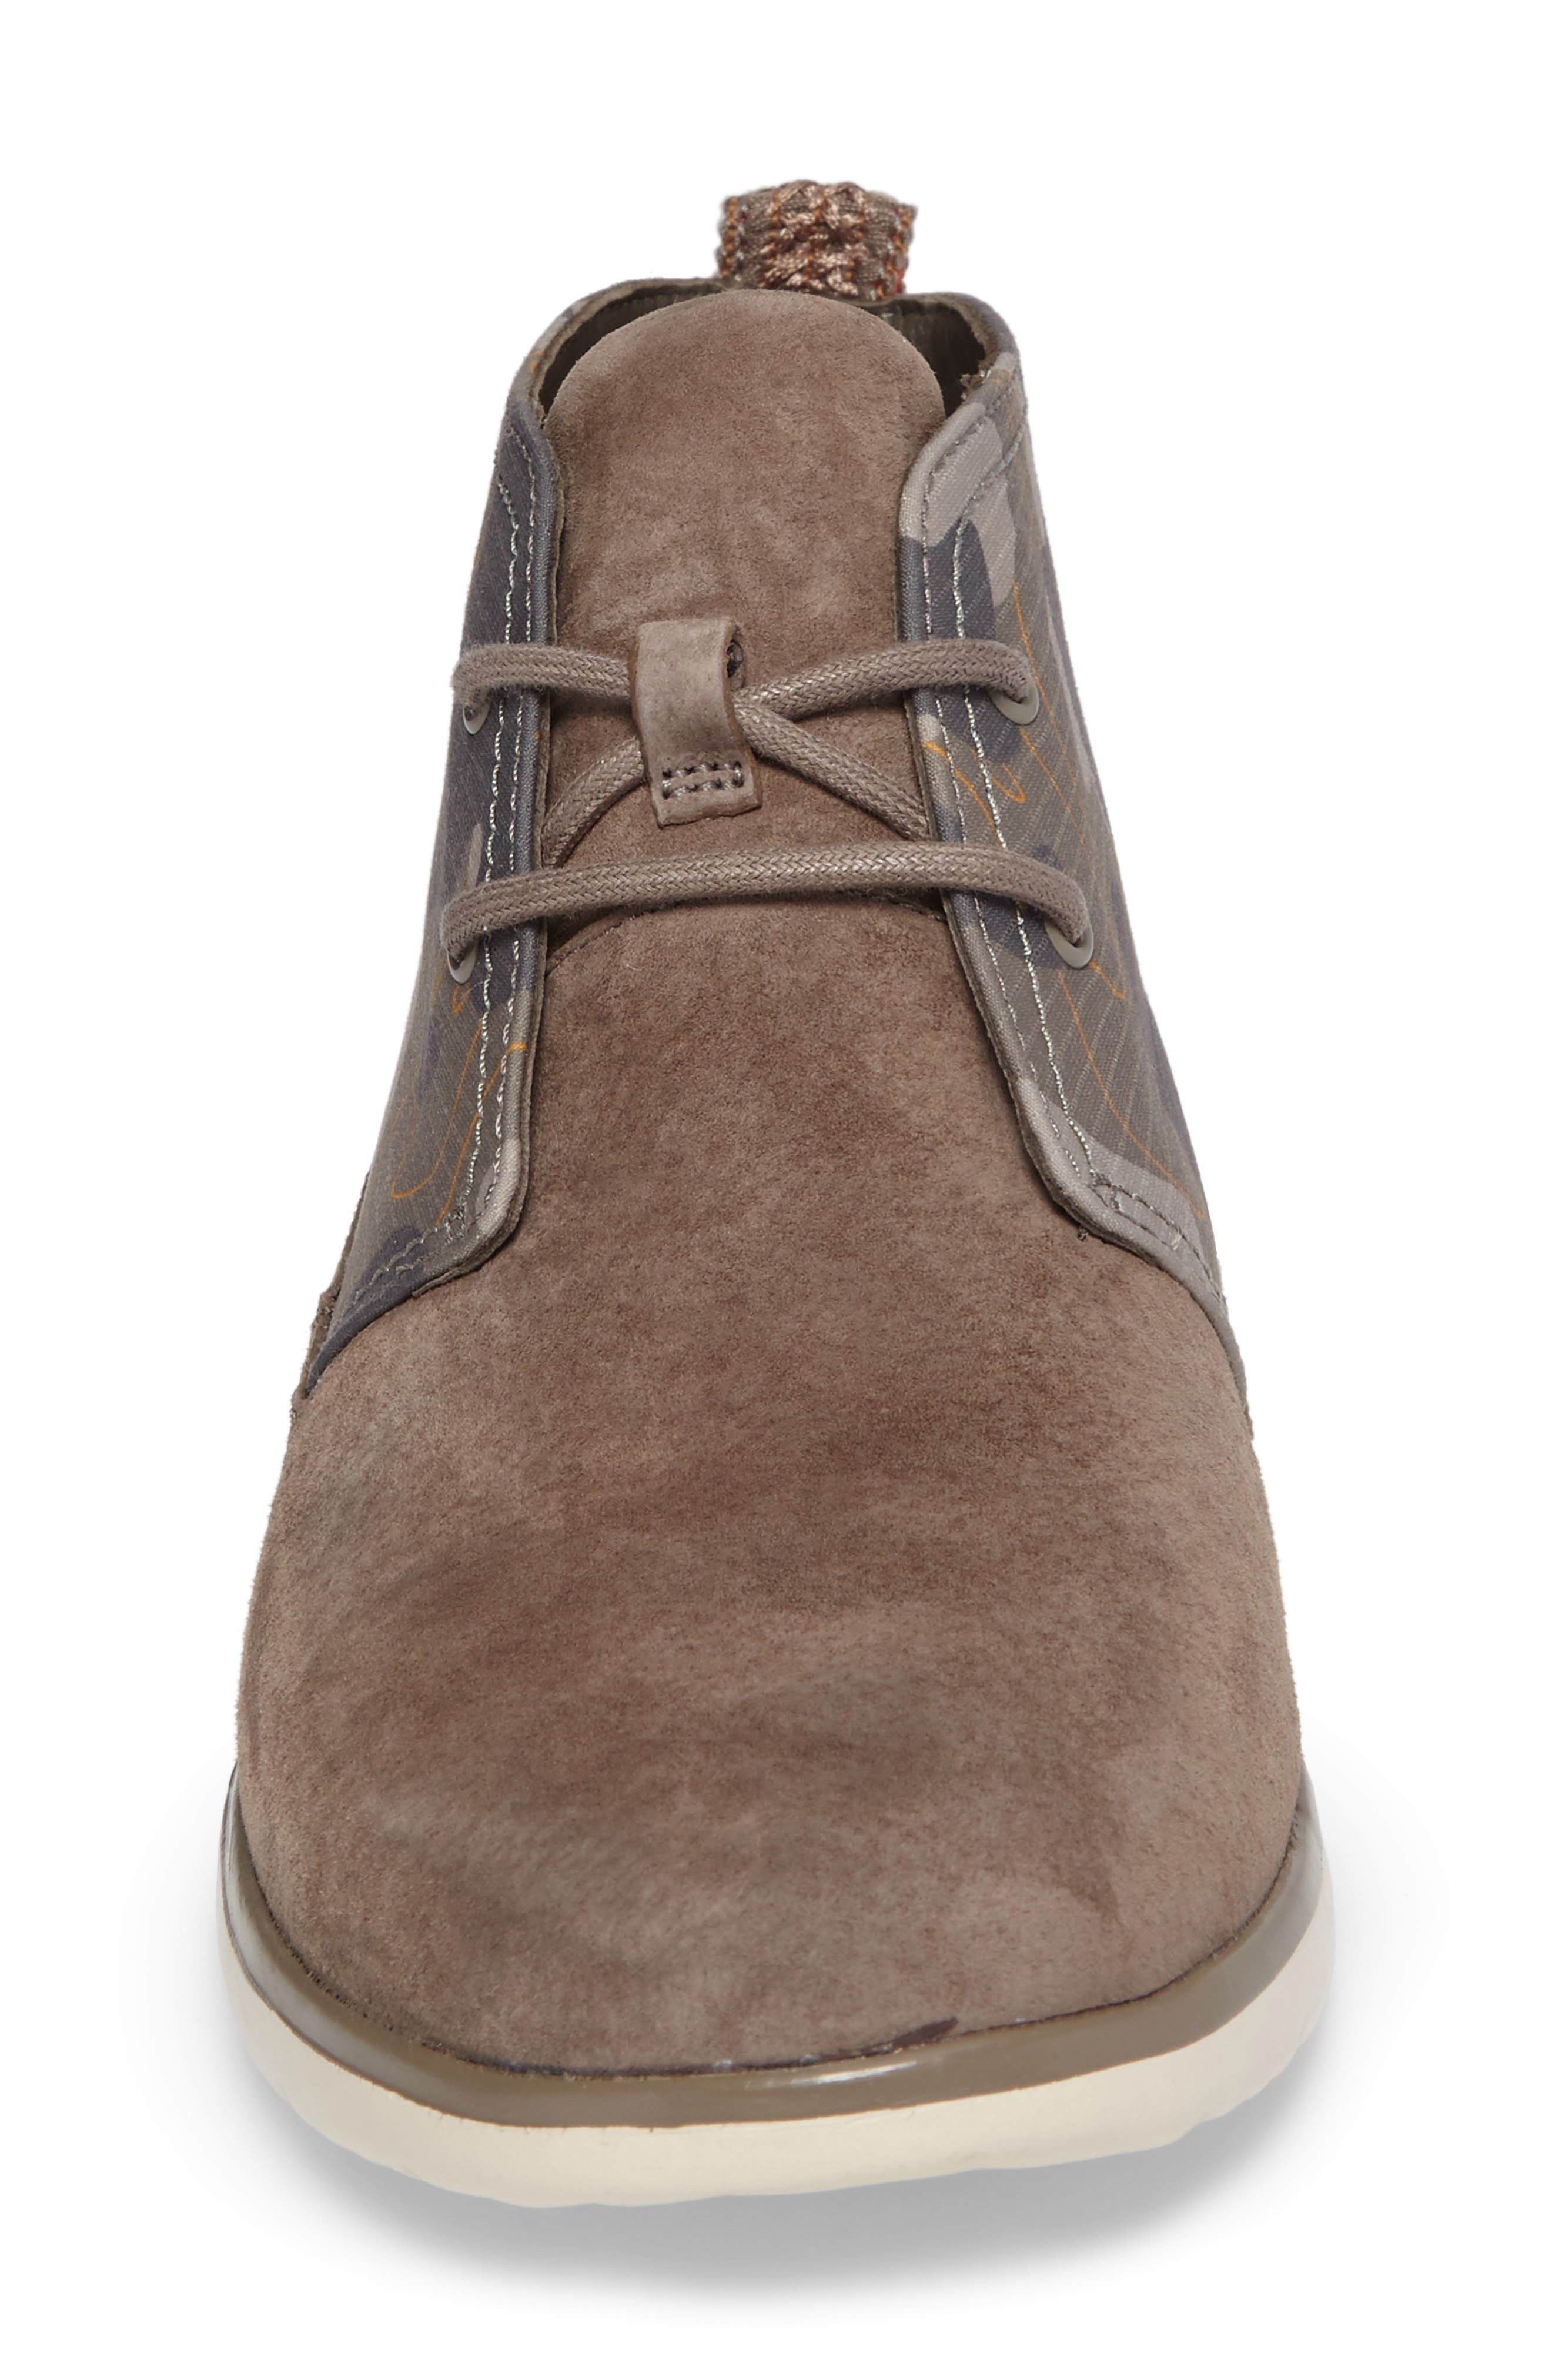 Freamon Chukka Boot,                             Alternate thumbnail 4, color,                             Brindle